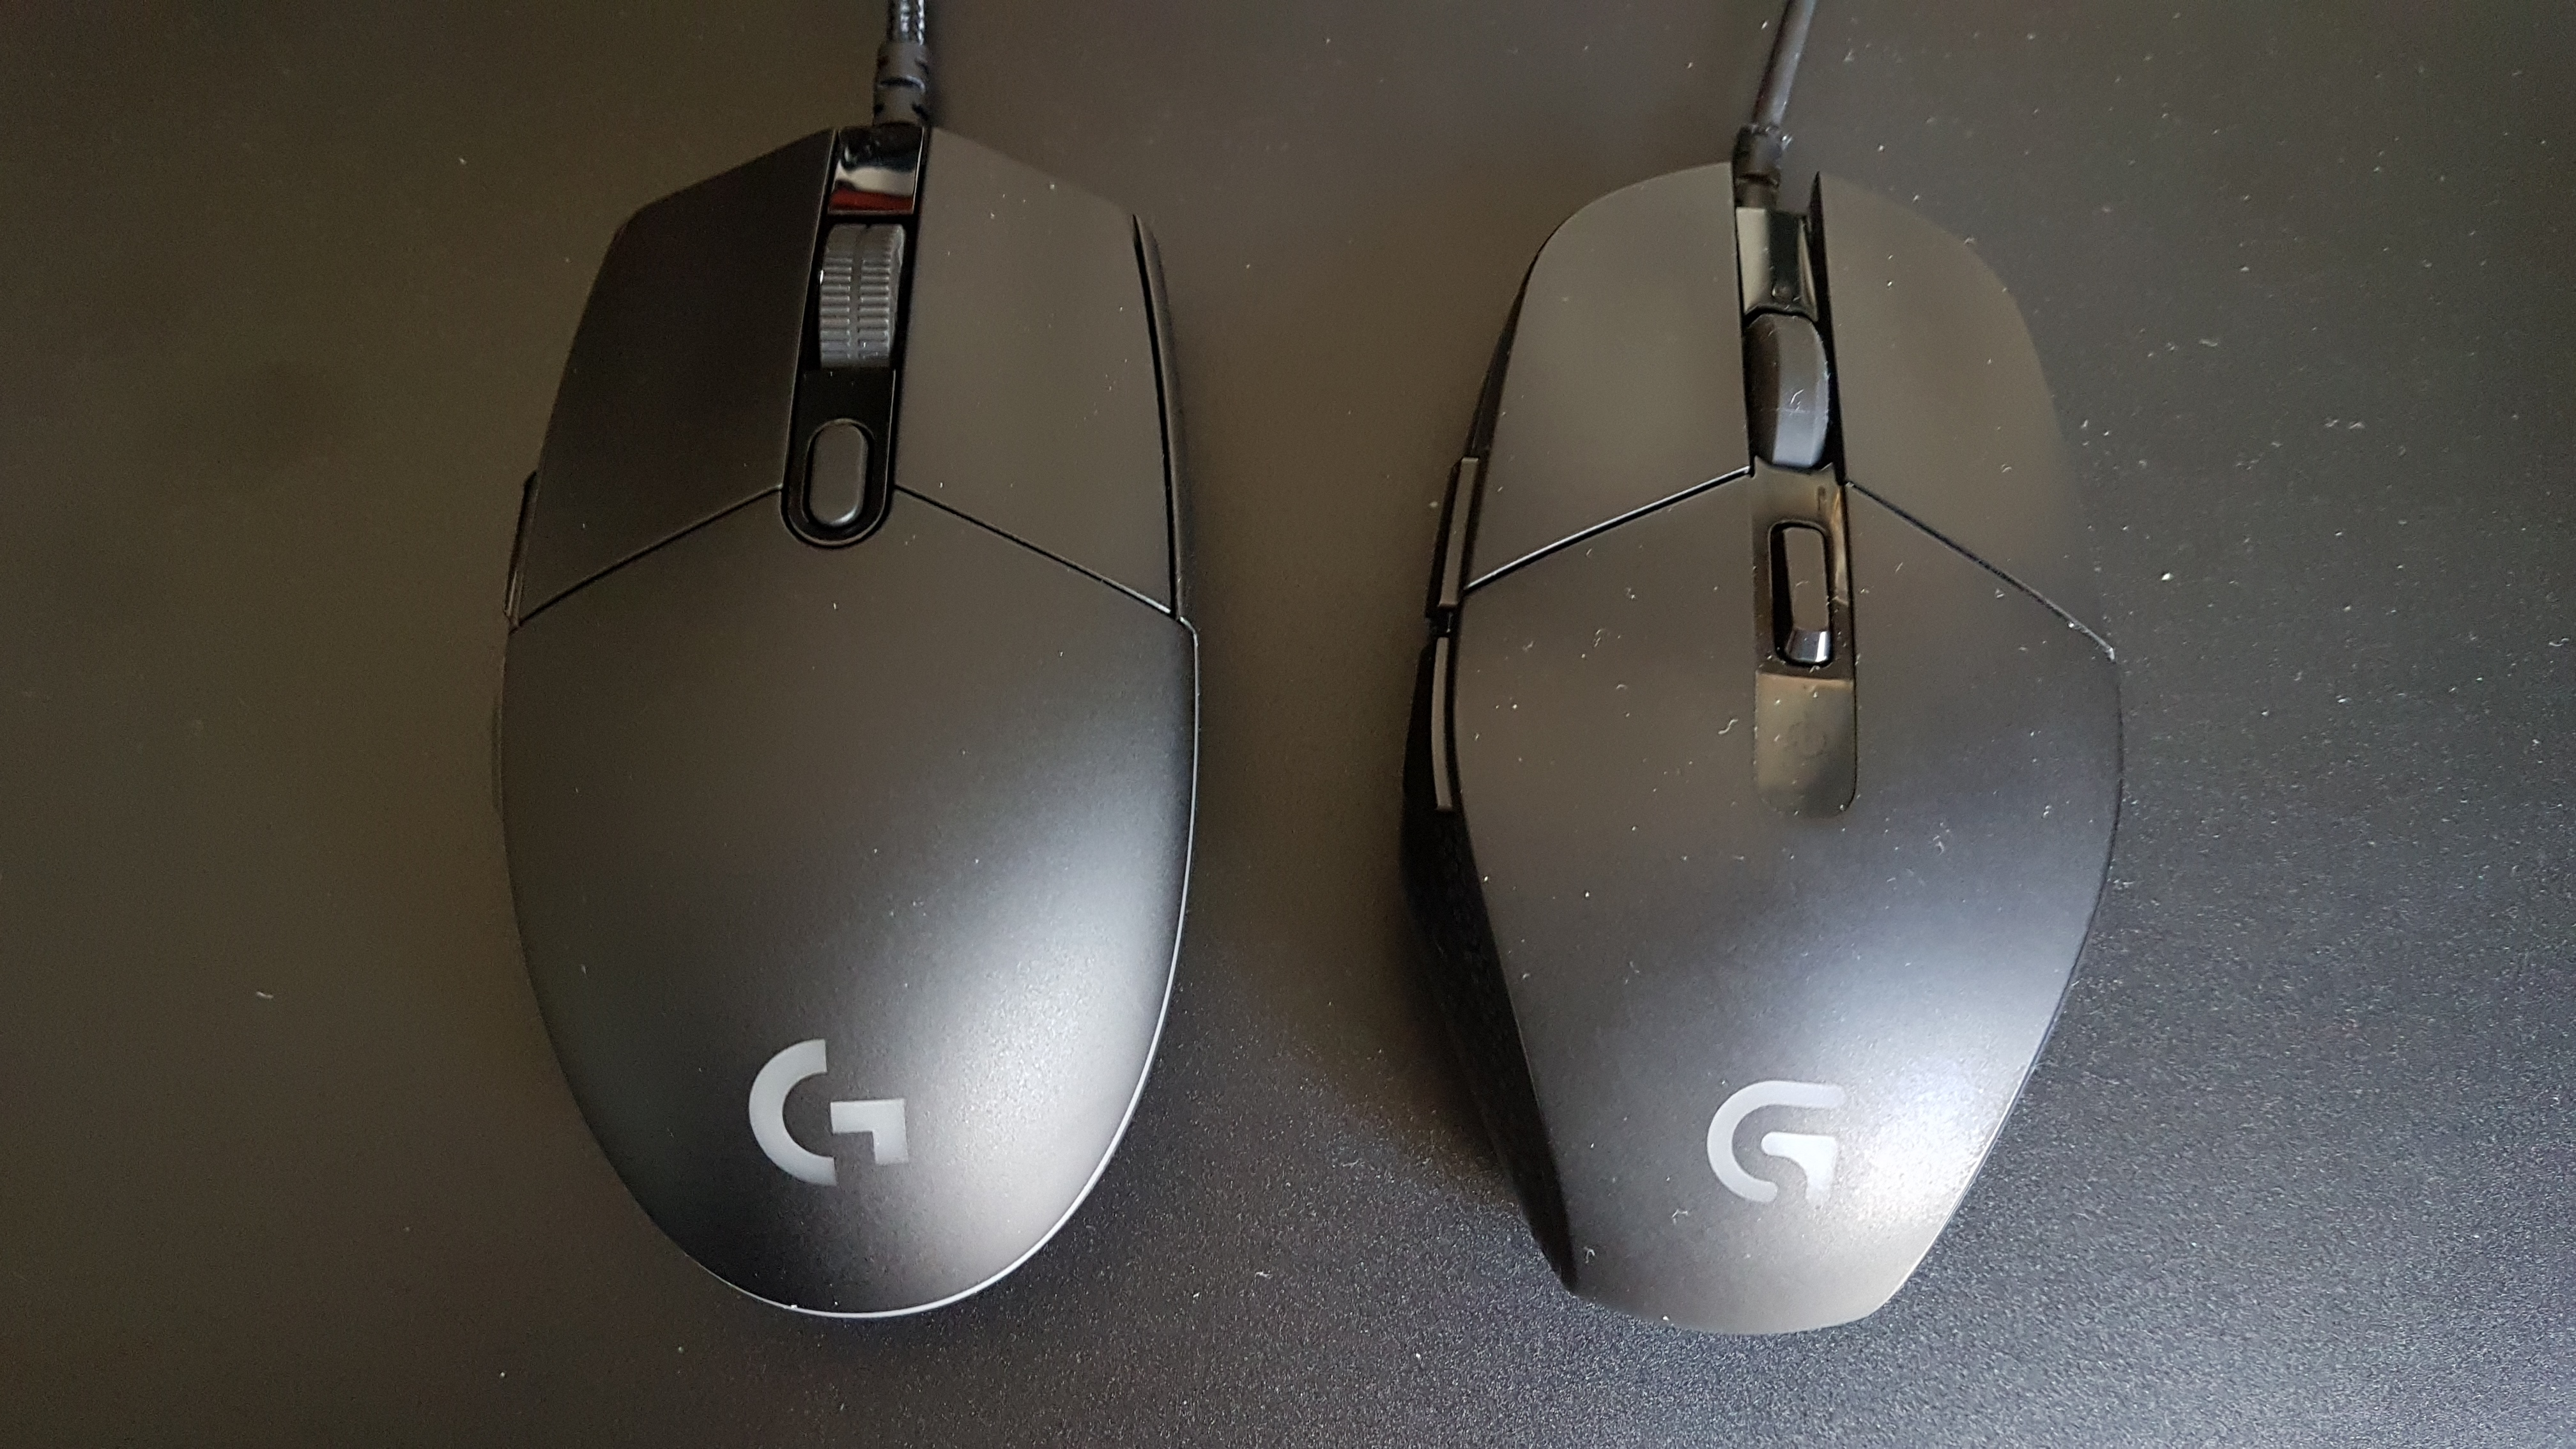 Sponsored Logitech G Pro Gaming Mouse Review By Ino Page 314